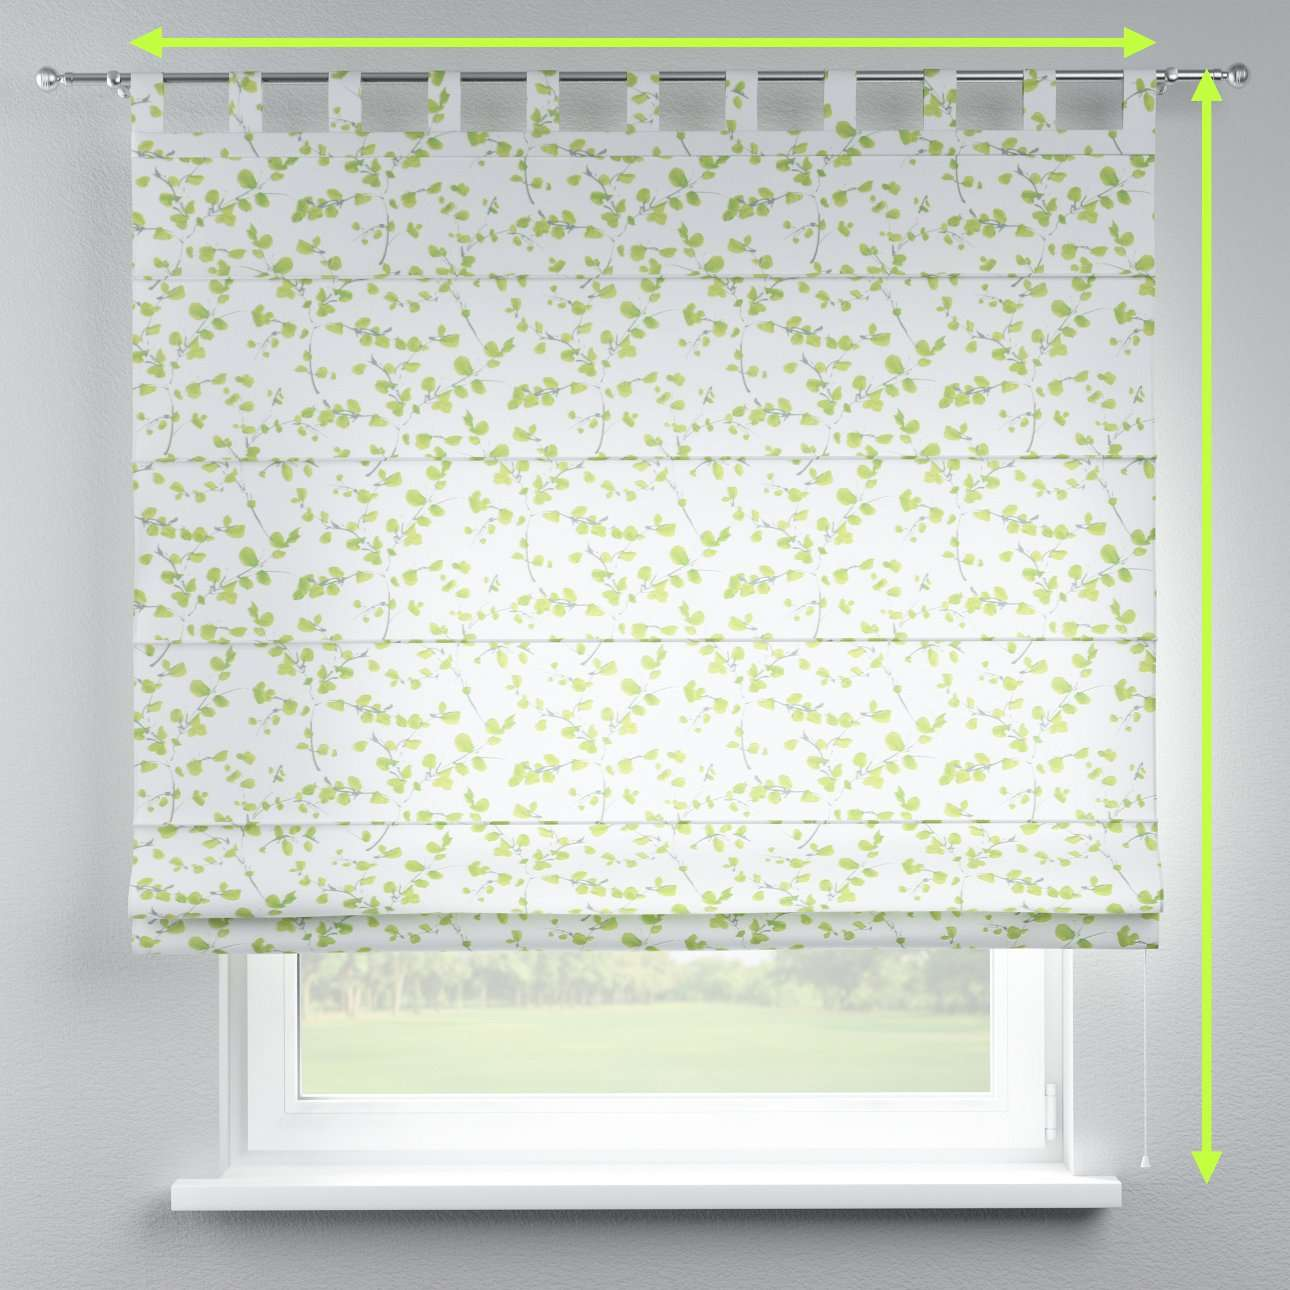 Verona tab top roman blind in collection Aquarelle, fabric: 140-76